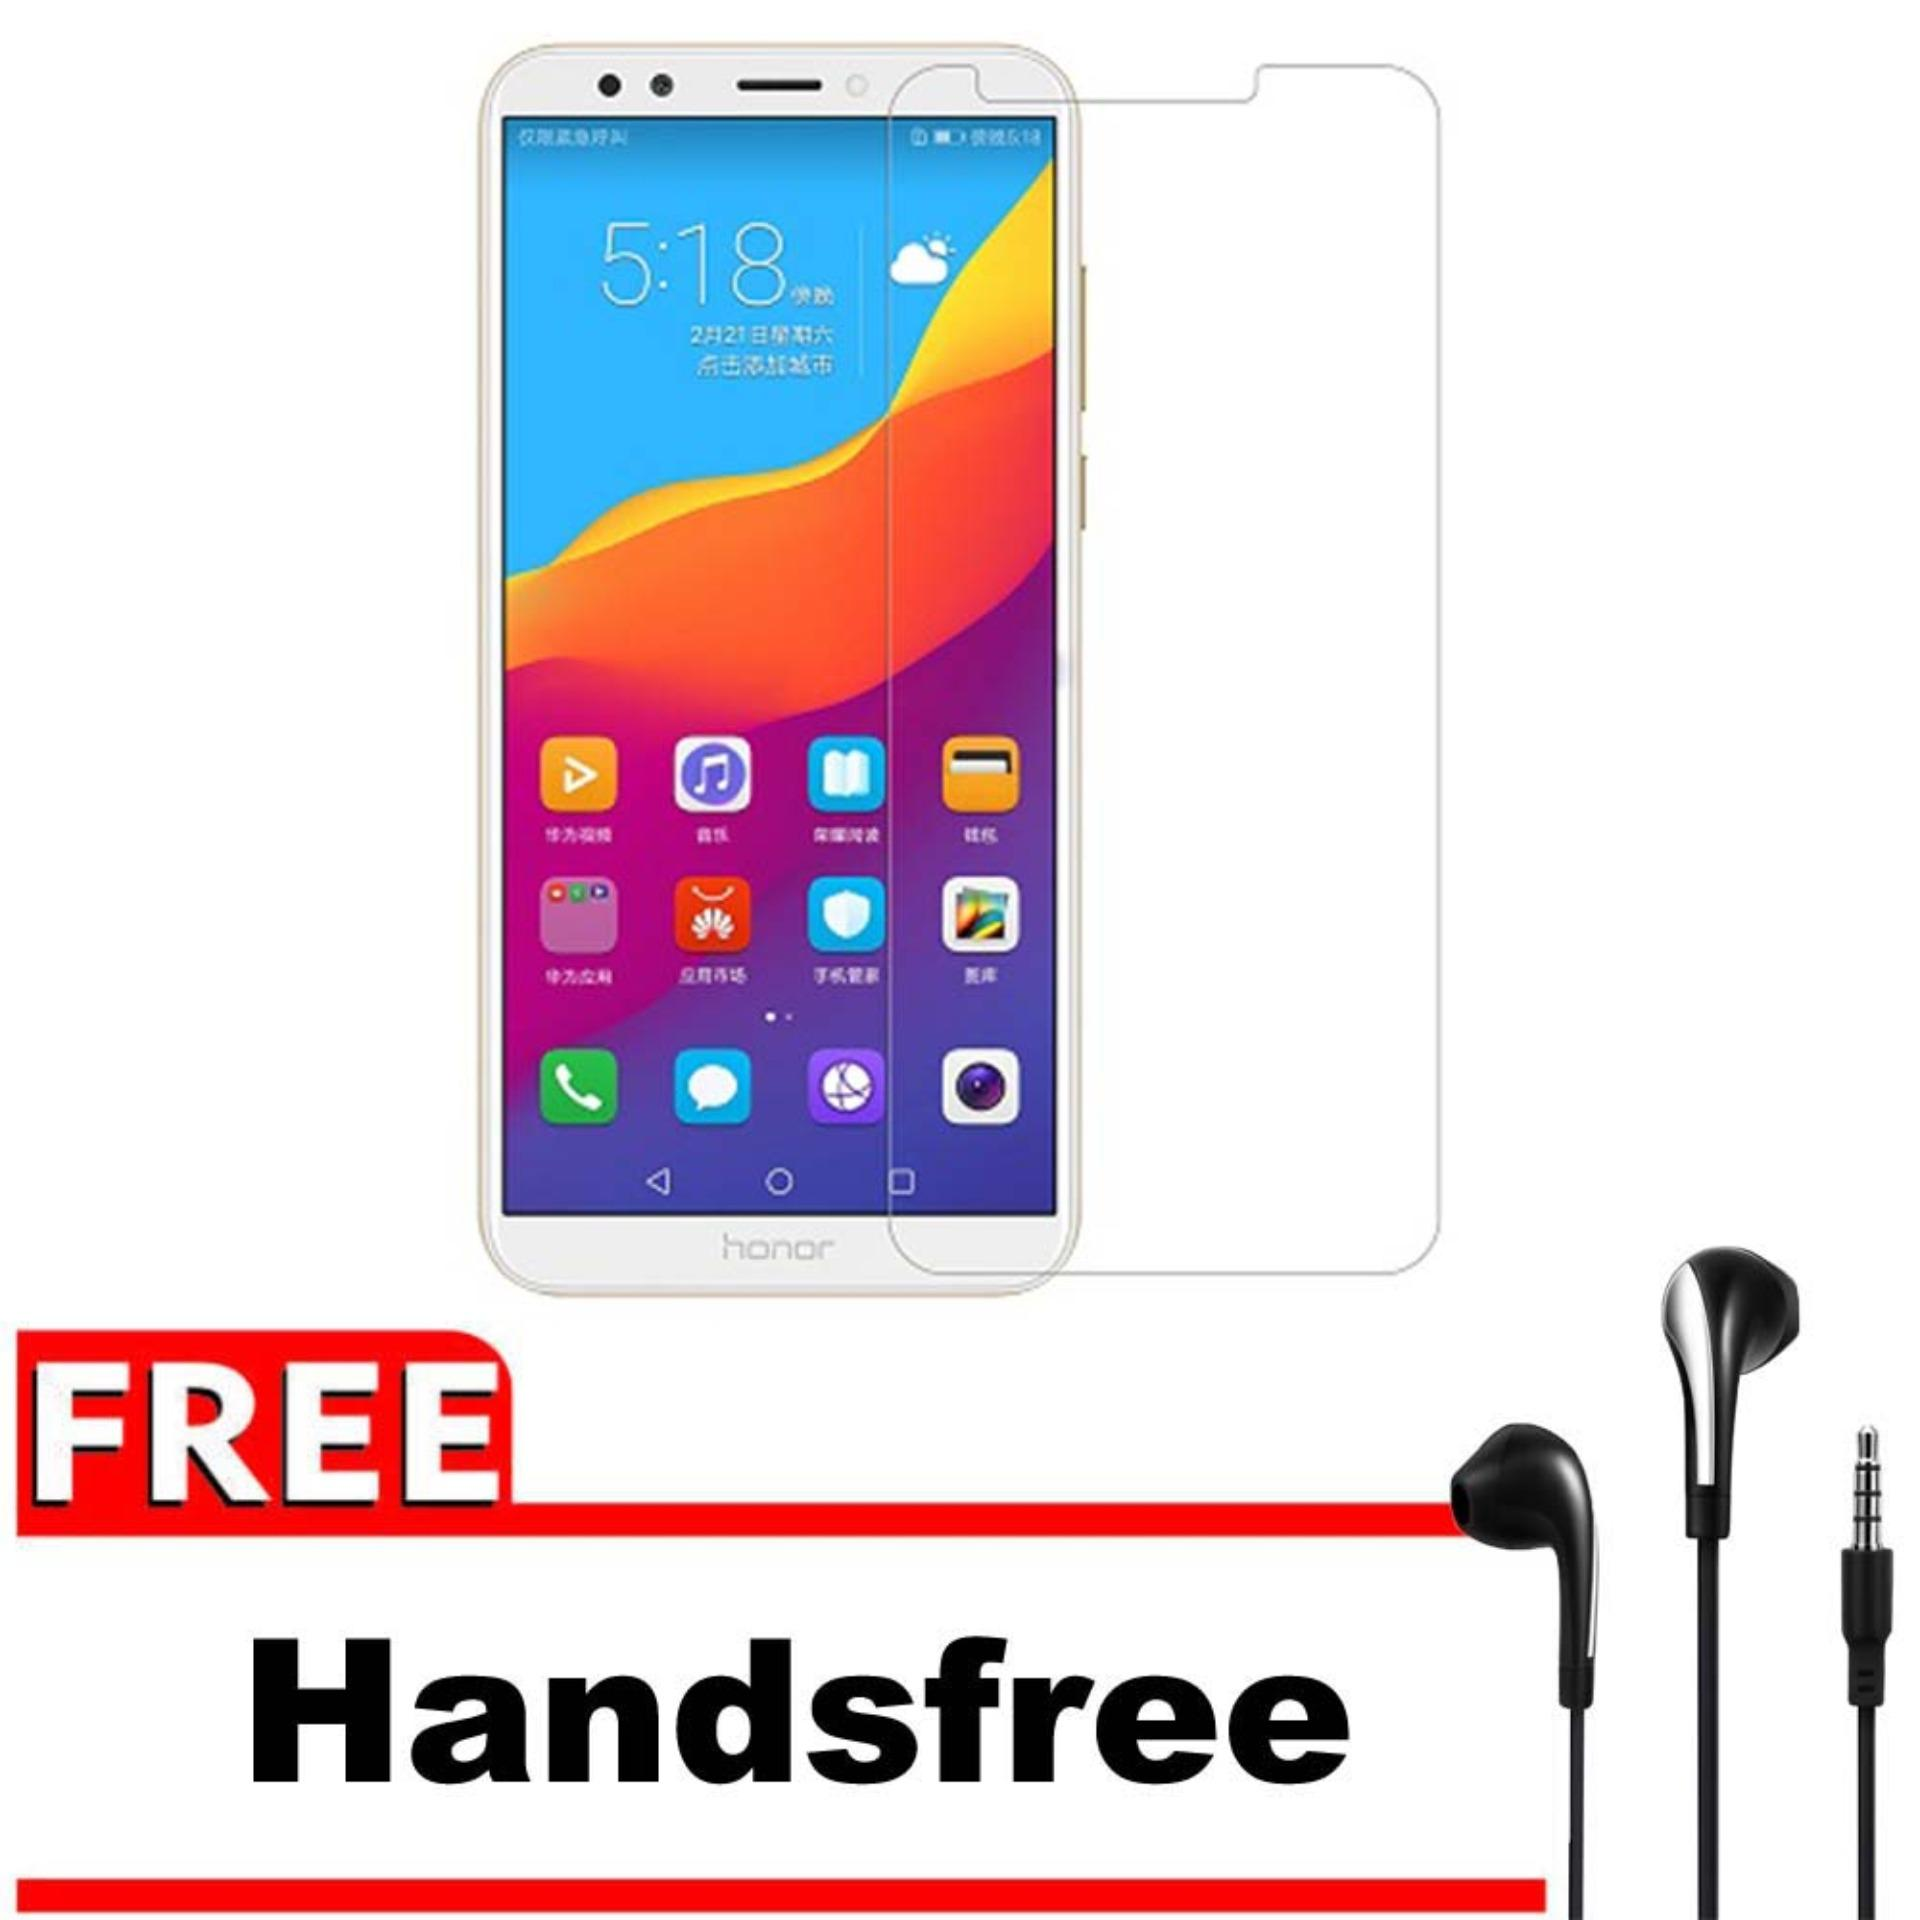 Vn Huawei Ascend Y7 Prime / Holly 4+ Plus / Enjoys 7+ Plus Tempered Glass 9H Screen Protector 0.32mm + Gratis Free Handsfree Earphone Headset Universal - Bening Transparan